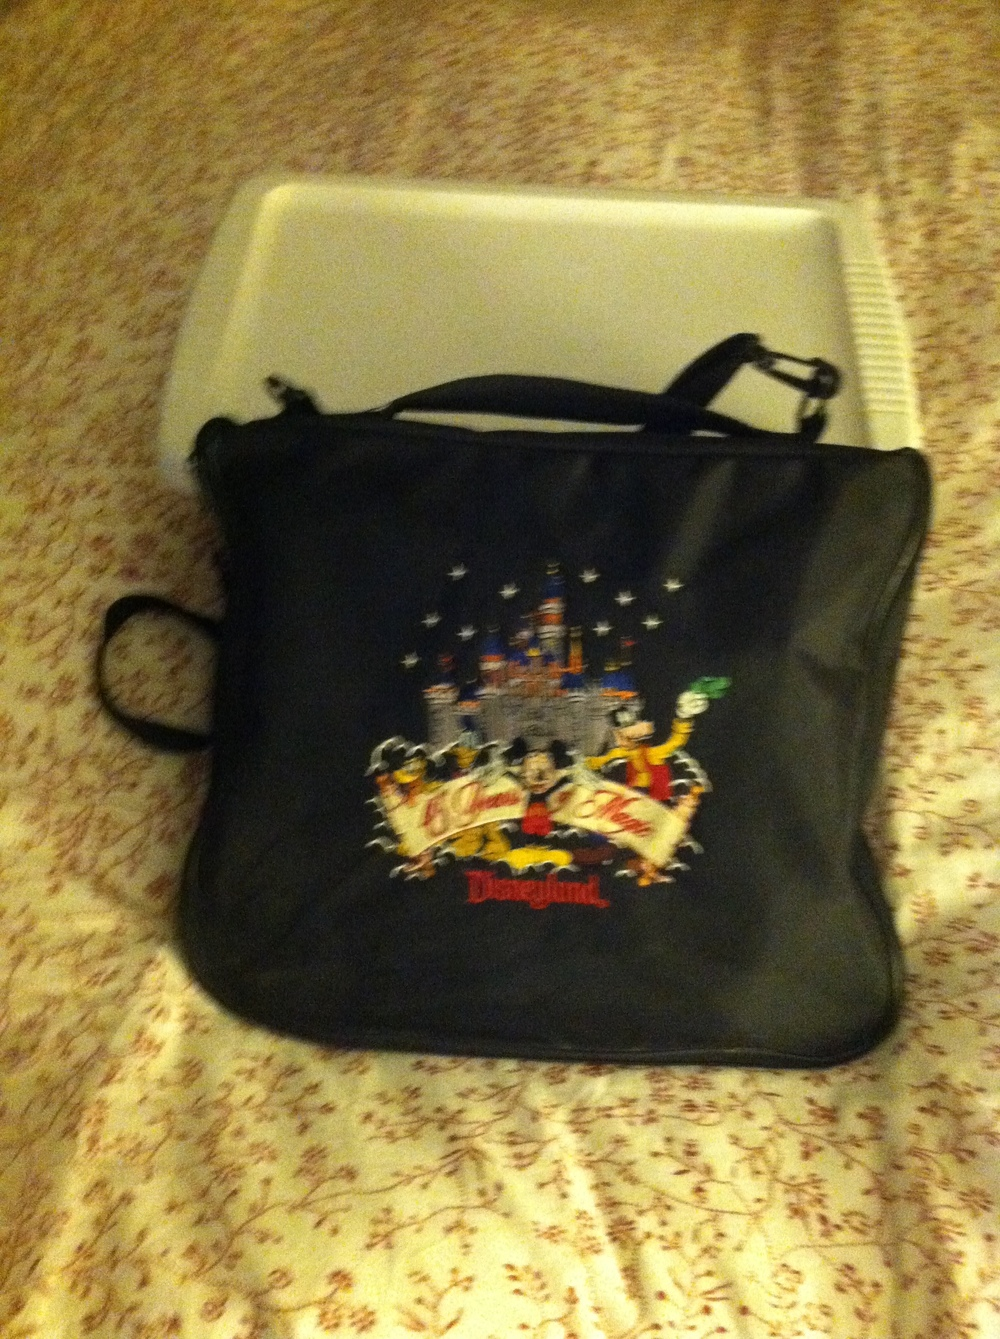 My pin bag and a plastic container full of pins = My Shameful Past